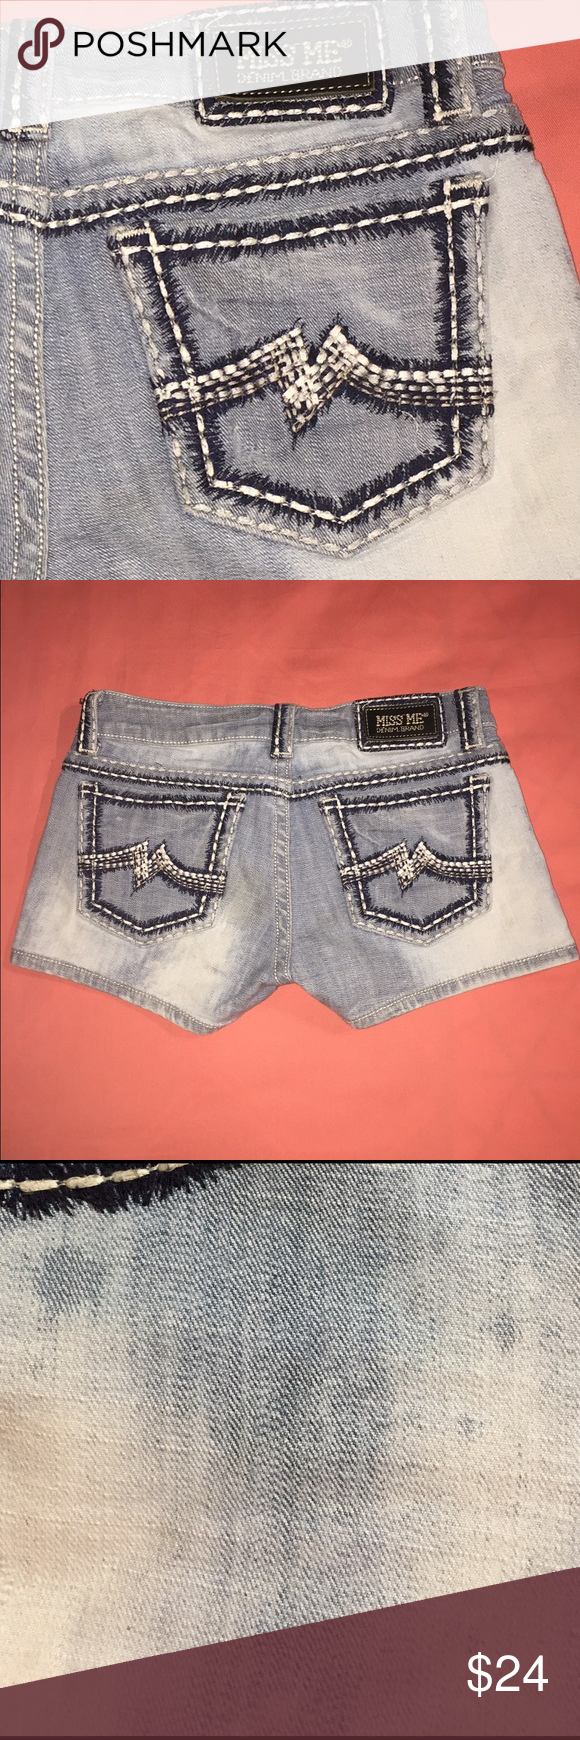 Miss Me Jeans Sunny Shorts Size 28 Miss Me Style: Sunny Short Sz 28 like new. Way too short for me:) Please see photo and feel free to ask questions before purchasing. No flaws- the details are not stains... I posted an up close pic of the front to show the manufacturers details more clearly (resembling a distressed look). Miss Me Jeans